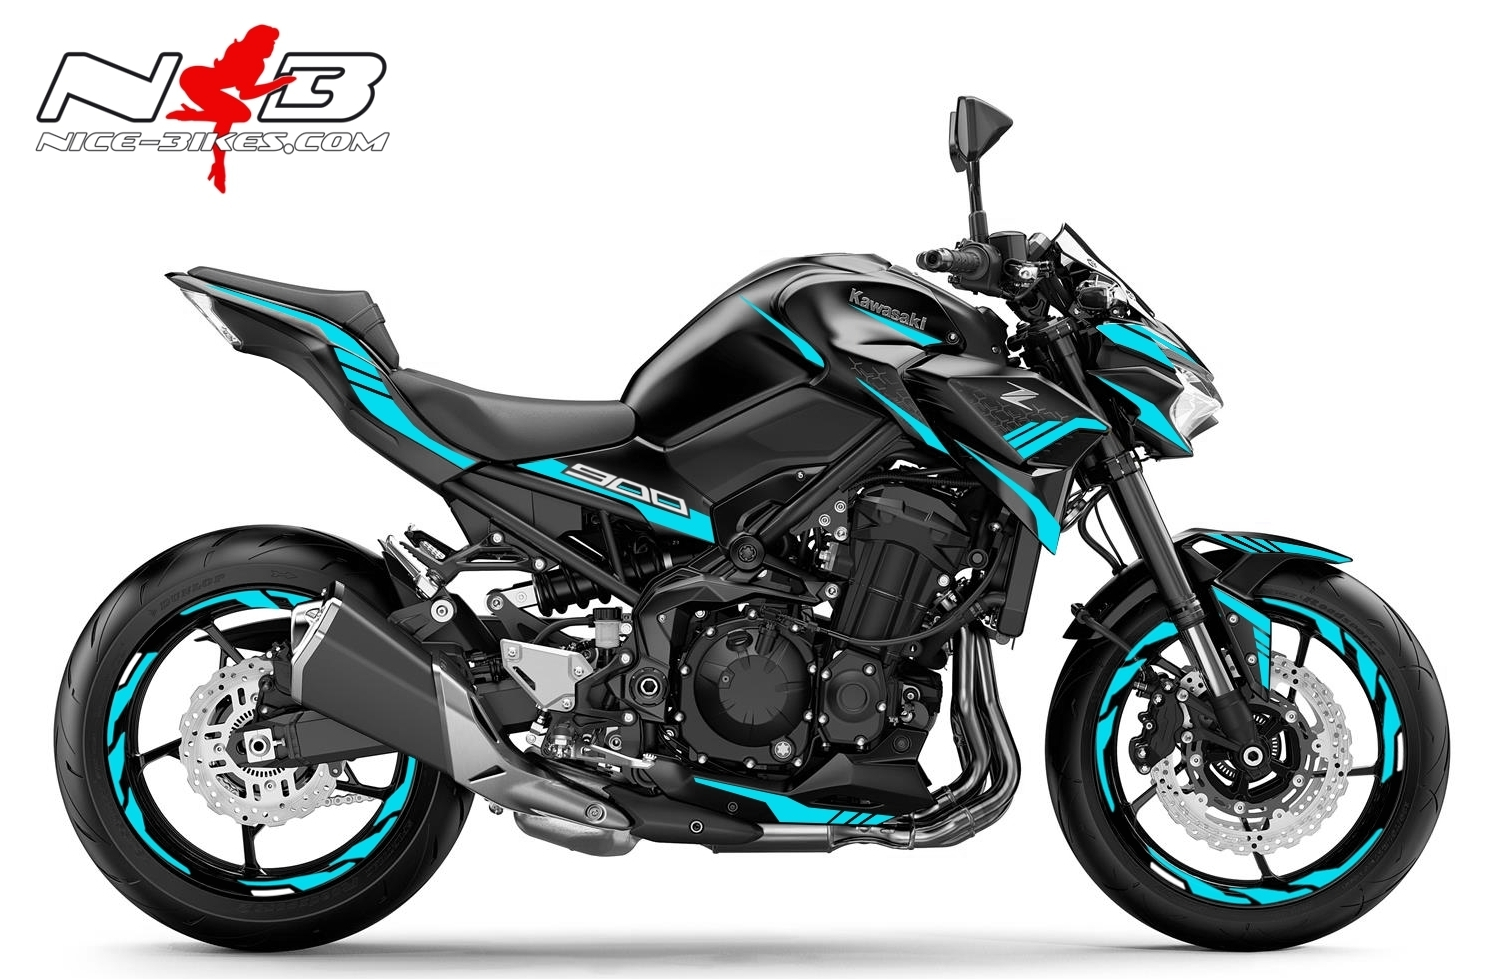 Foliendesign Kawasaki Z900 Bj. 2020 Light Blue